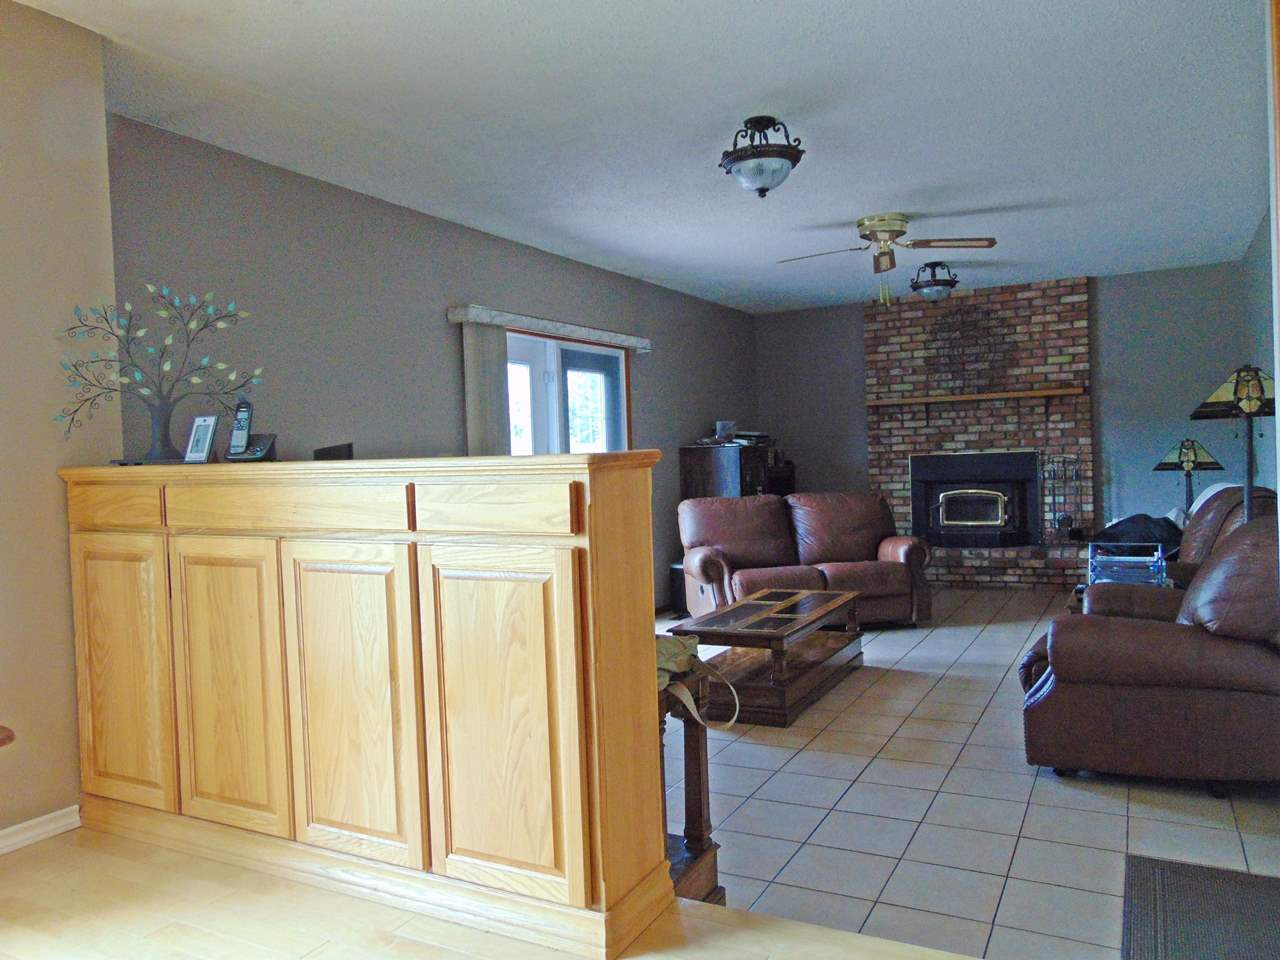 Photo 15: 57130 Rg Rd 230: Rural Sturgeon County House for sale : MLS(r) # E4064722